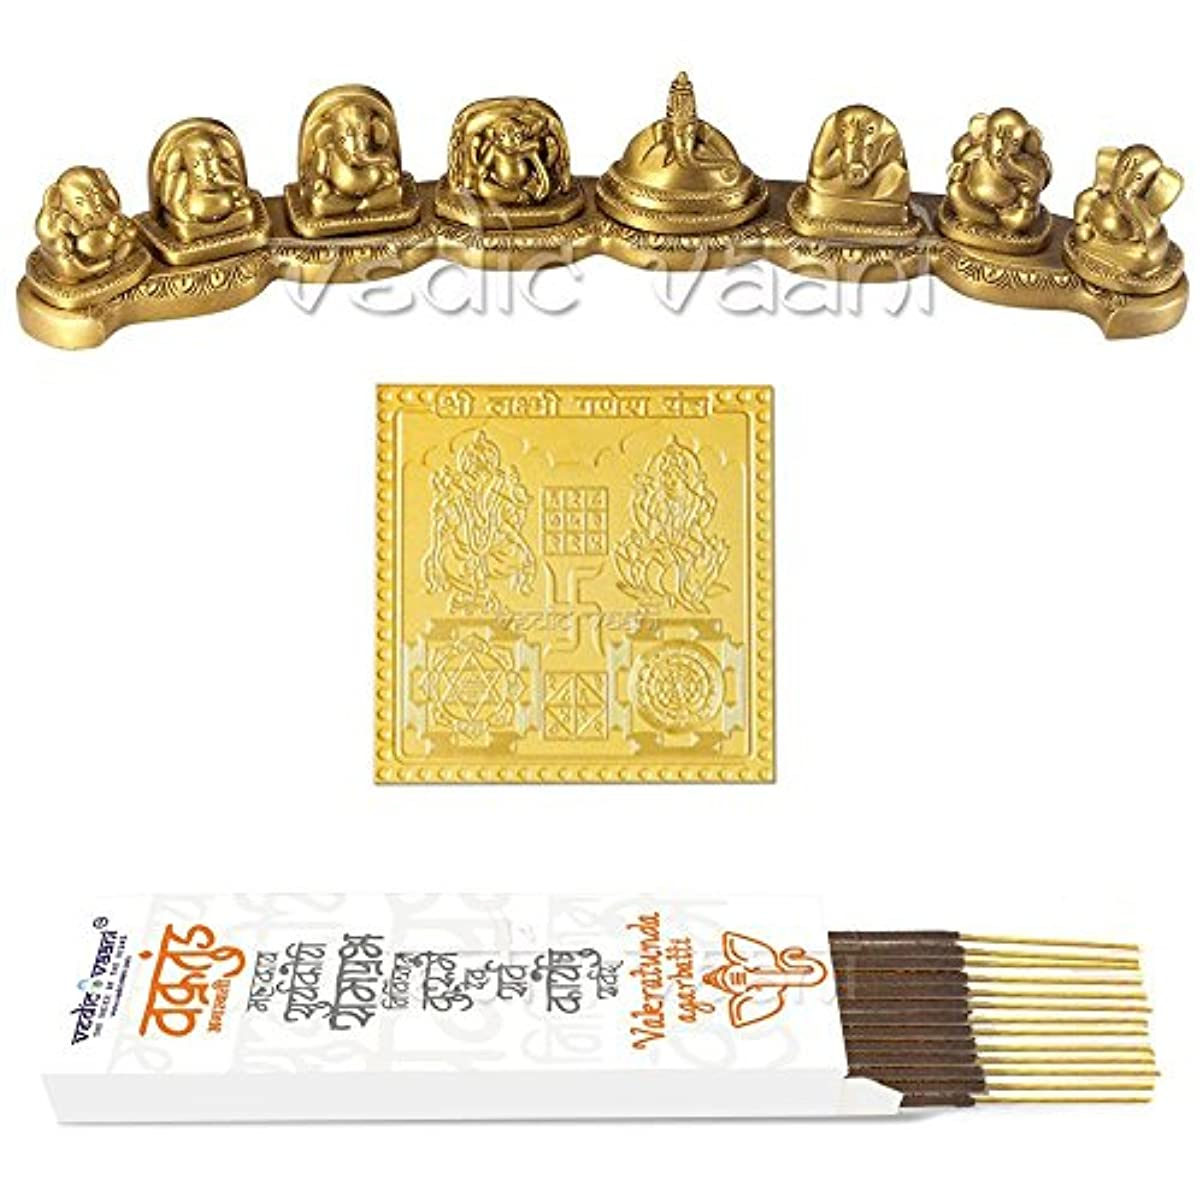 抑制美的問い合わせるAshtavinayak Ganpati Bappa Idol In Brass WithヤントラとVakratund Incense Sticks – Vedic Vaani